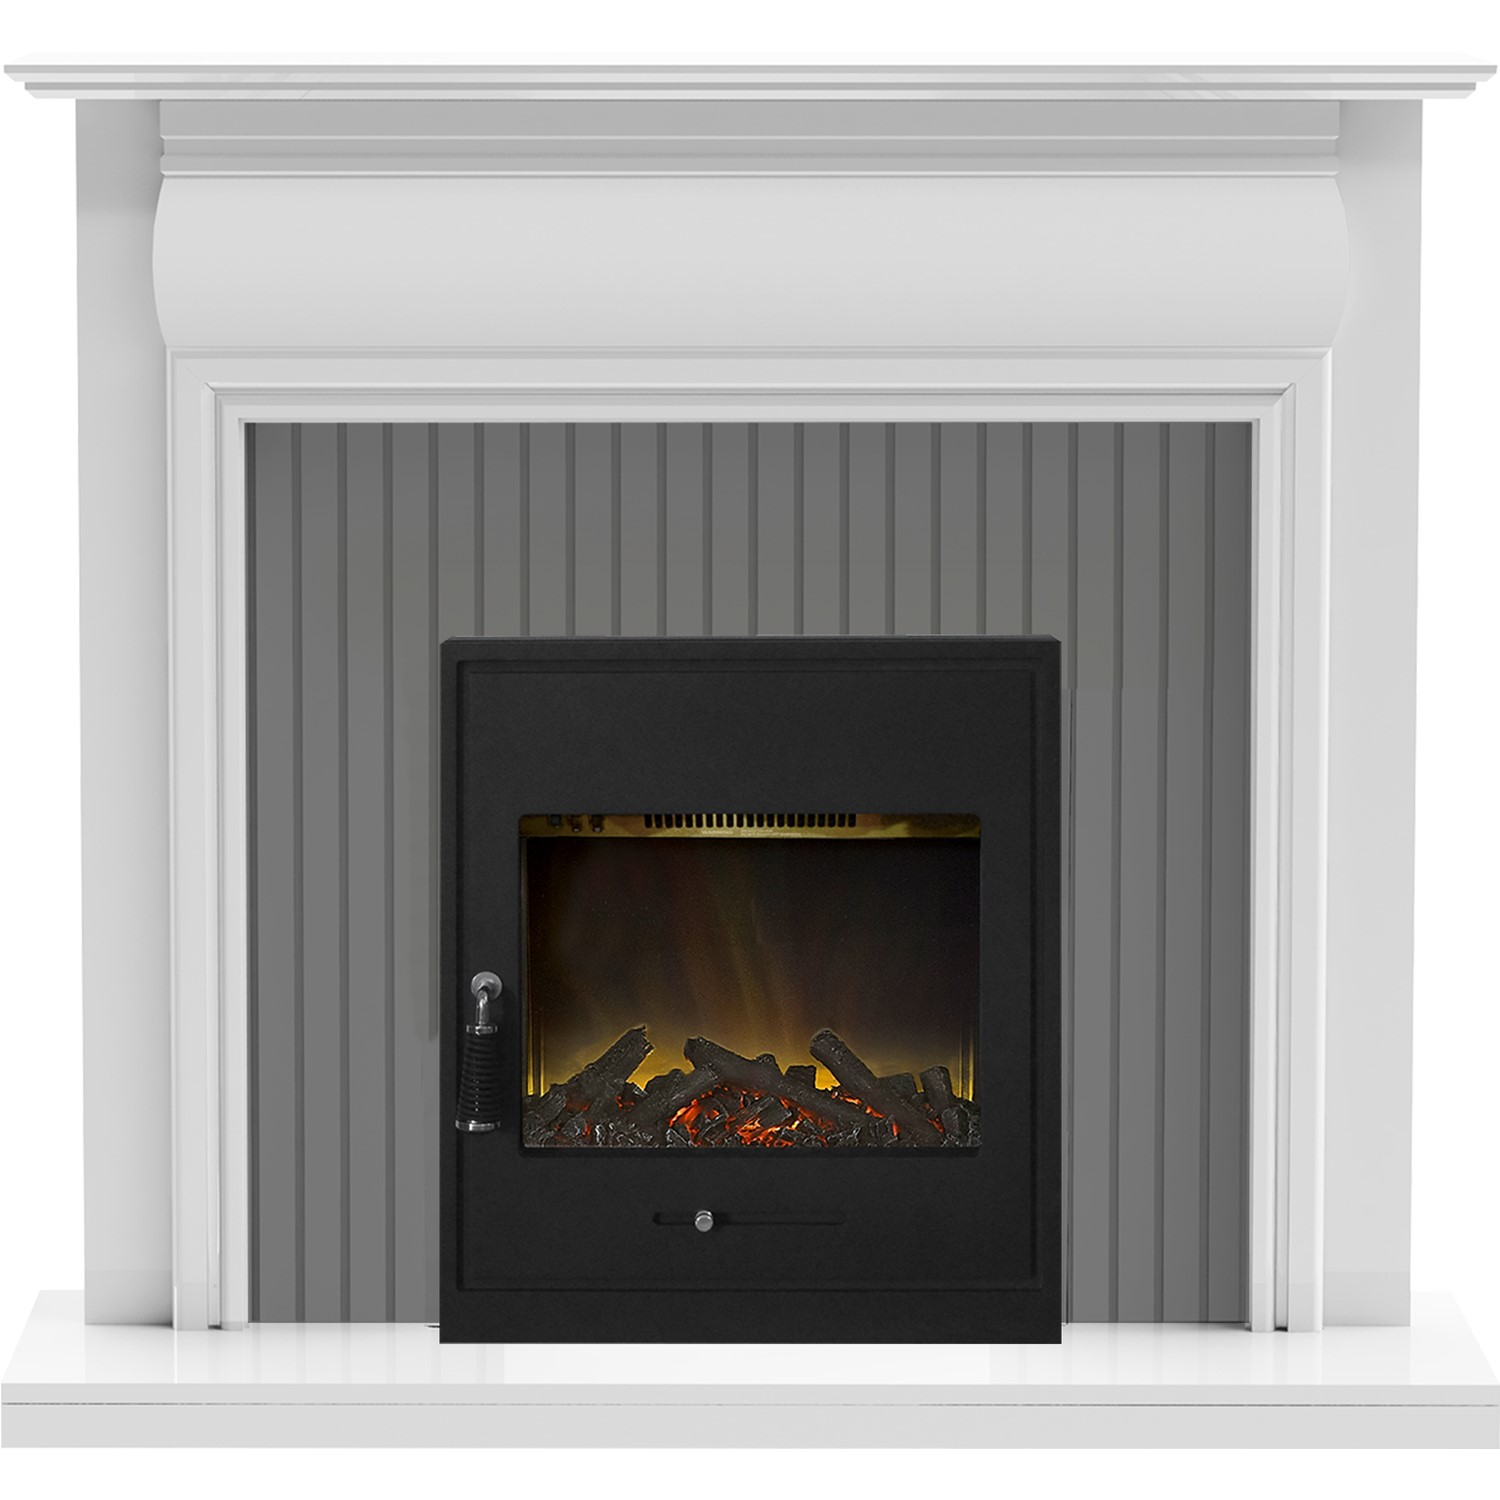 Awe Inspiring Adam Westminster Fireplace In White Galaxy Grey With Oslo Electric Inset Stove In Black Interior Design Ideas Inamawefileorg